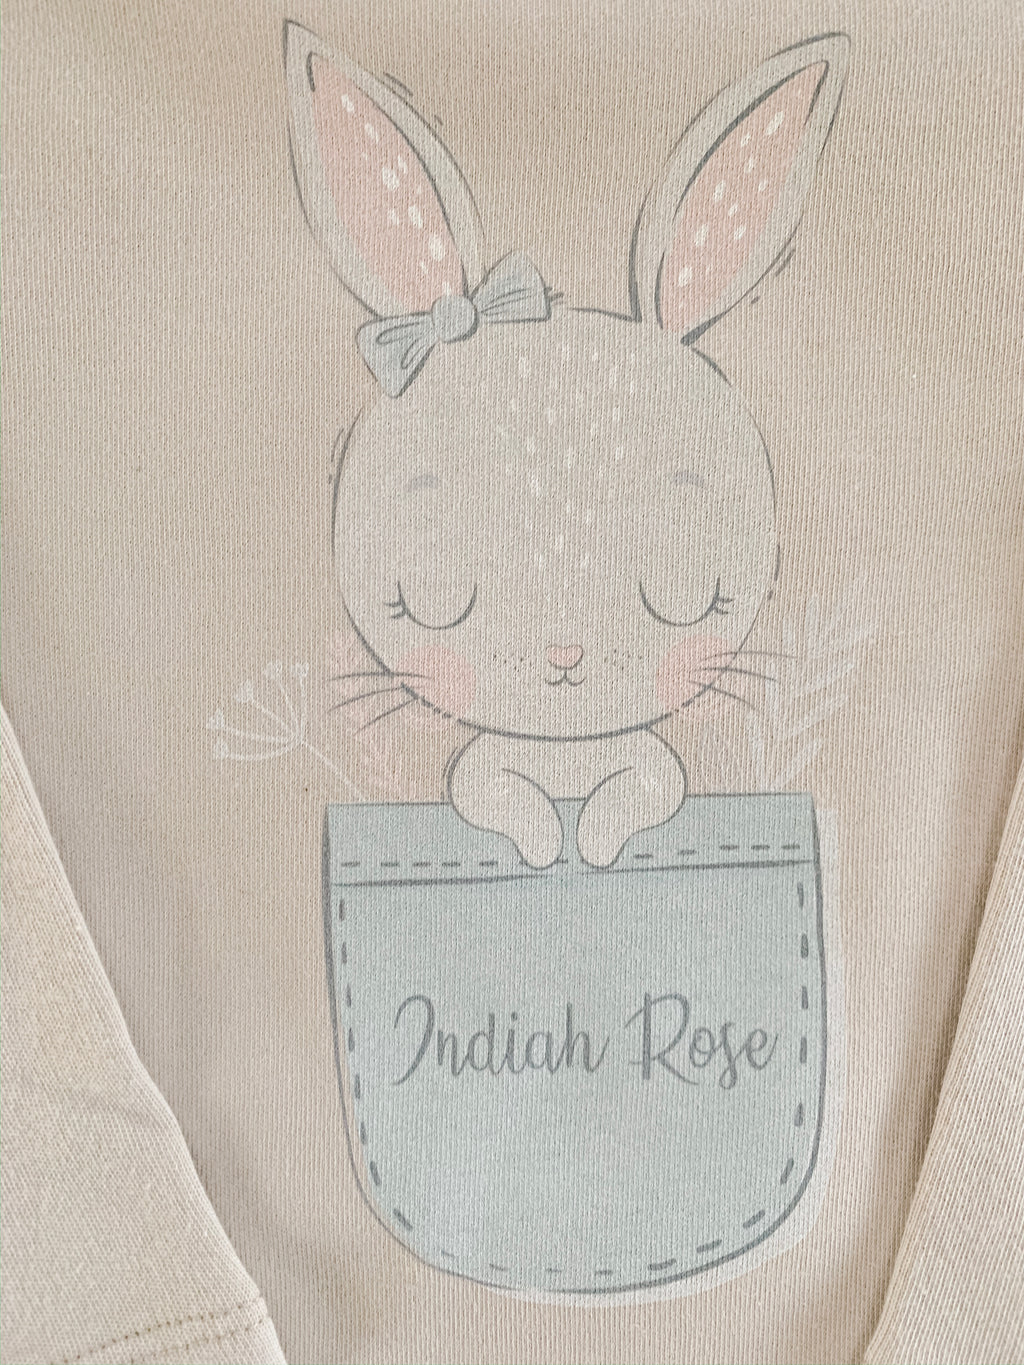 Bunny vest / t-shirt (GIRL design)